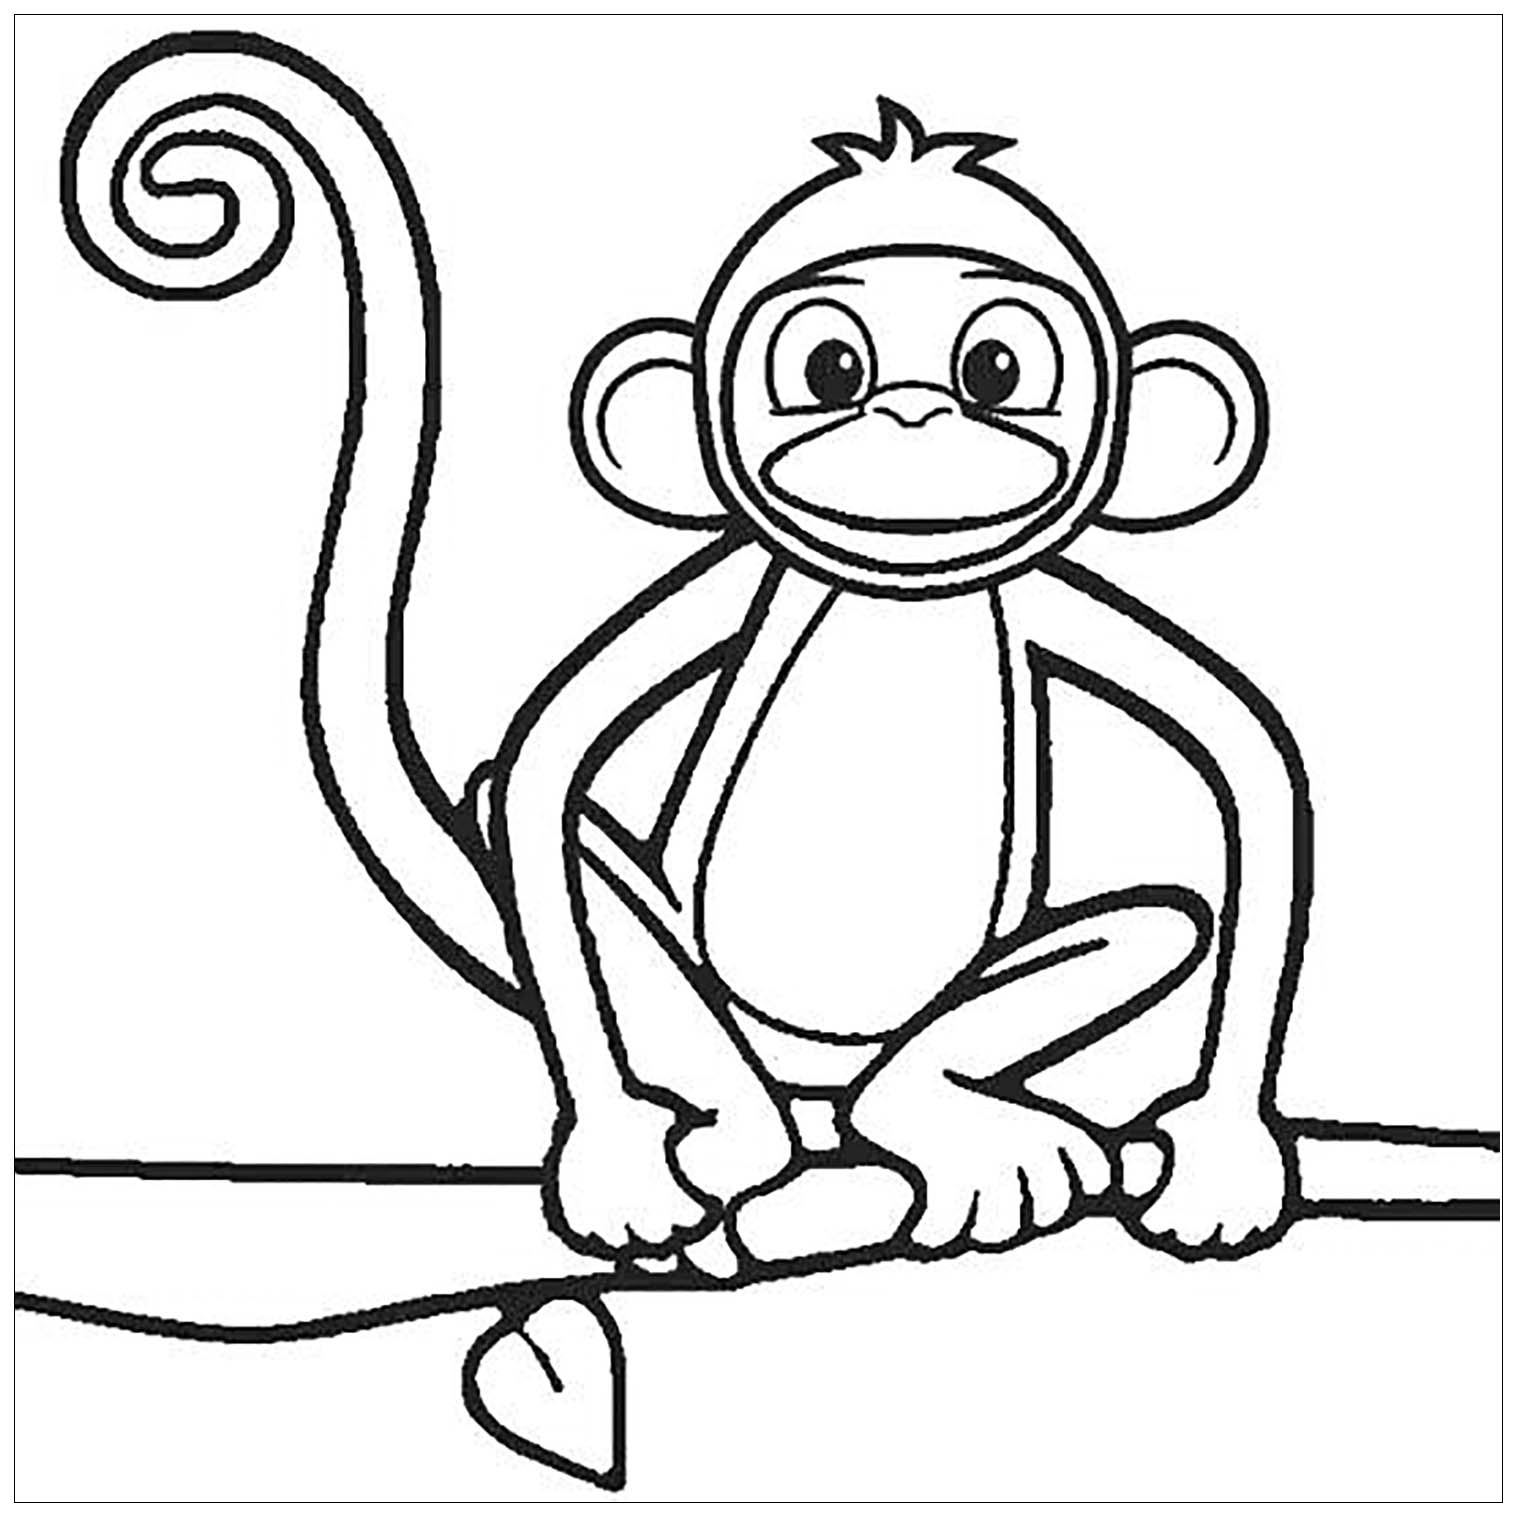 colouring pictures of monkeys free printable monkey coloring pages for kids jeffersonclan monkeys pictures colouring of